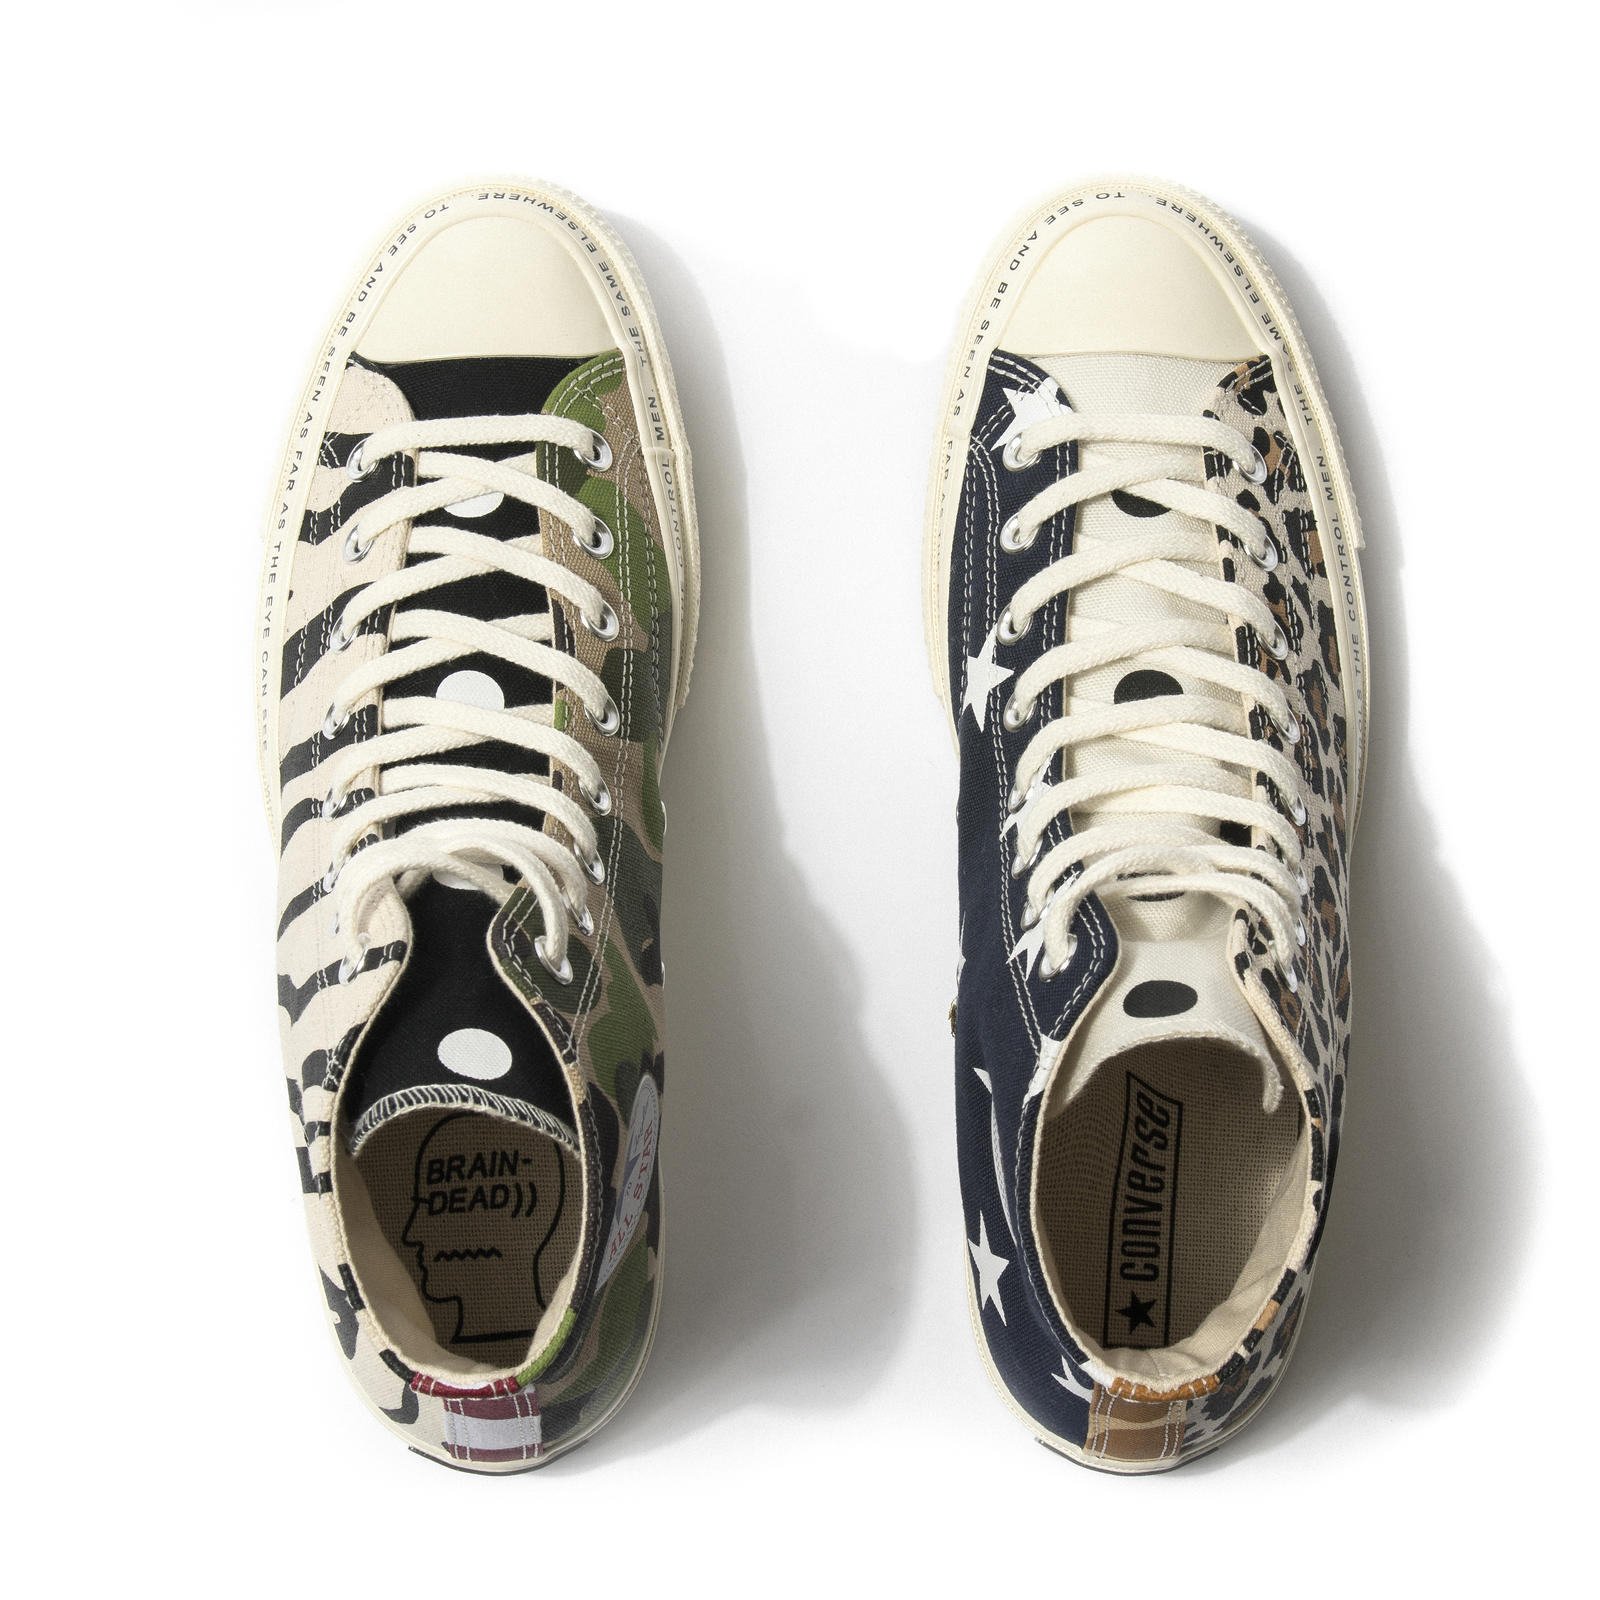 bfd38e36993 Converse x Brain Dead Chuck 70 and Apparel Collection - Nike News